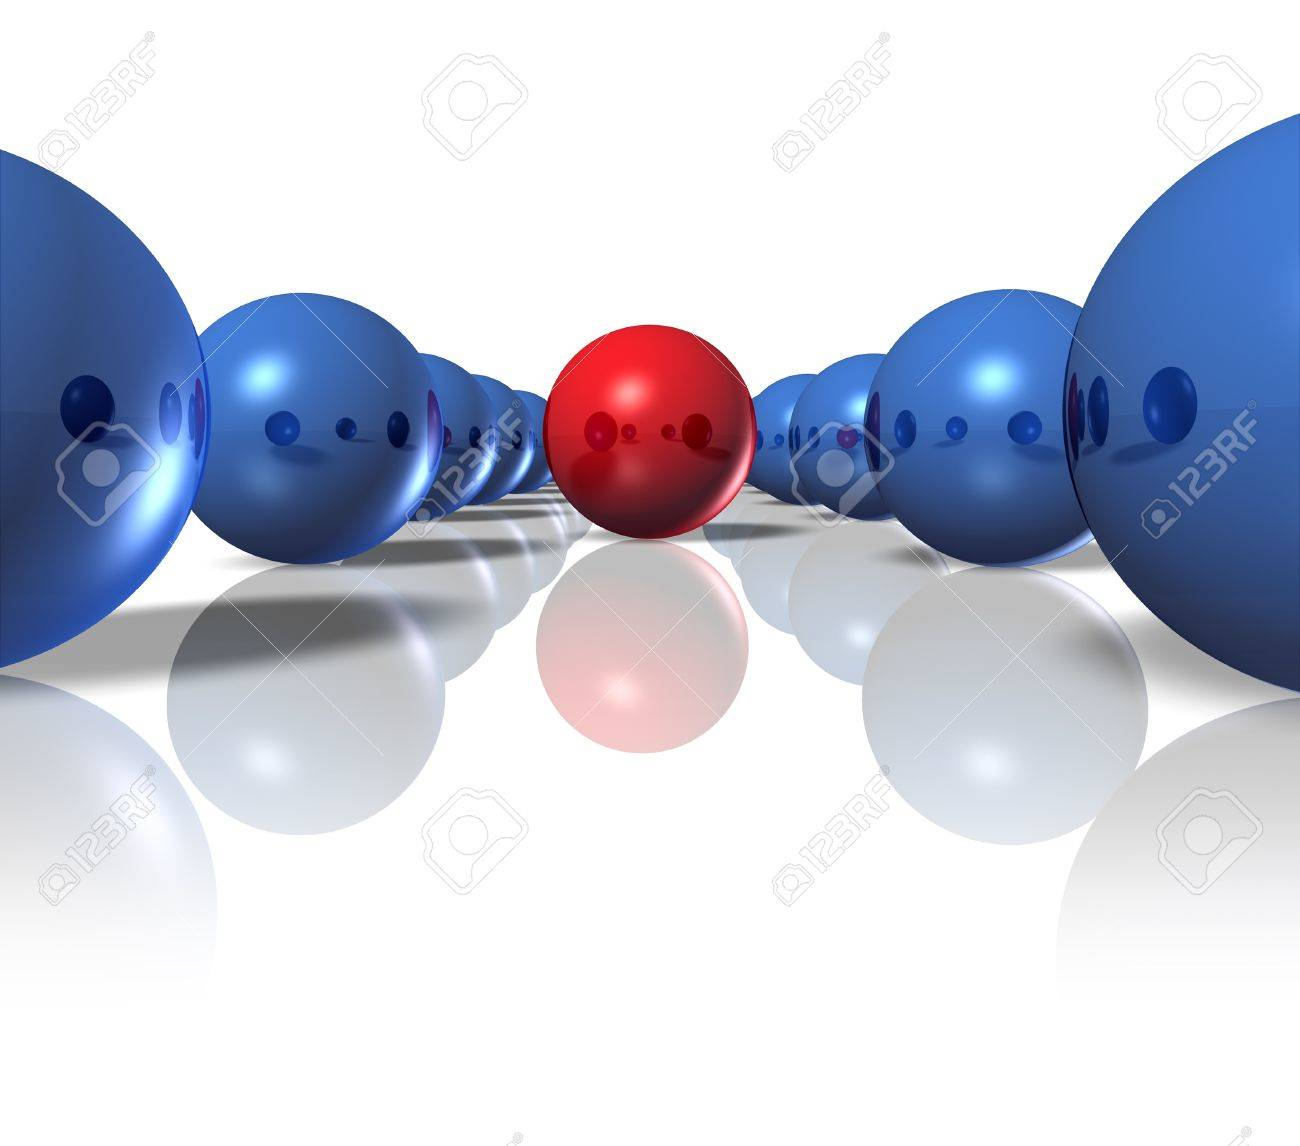 Leader and power leadership concept with blue spheres as followers and a single red ball as the guide and authority to deliver a winning plan and business strategy for team success on a white background Stock Photo - 13203553